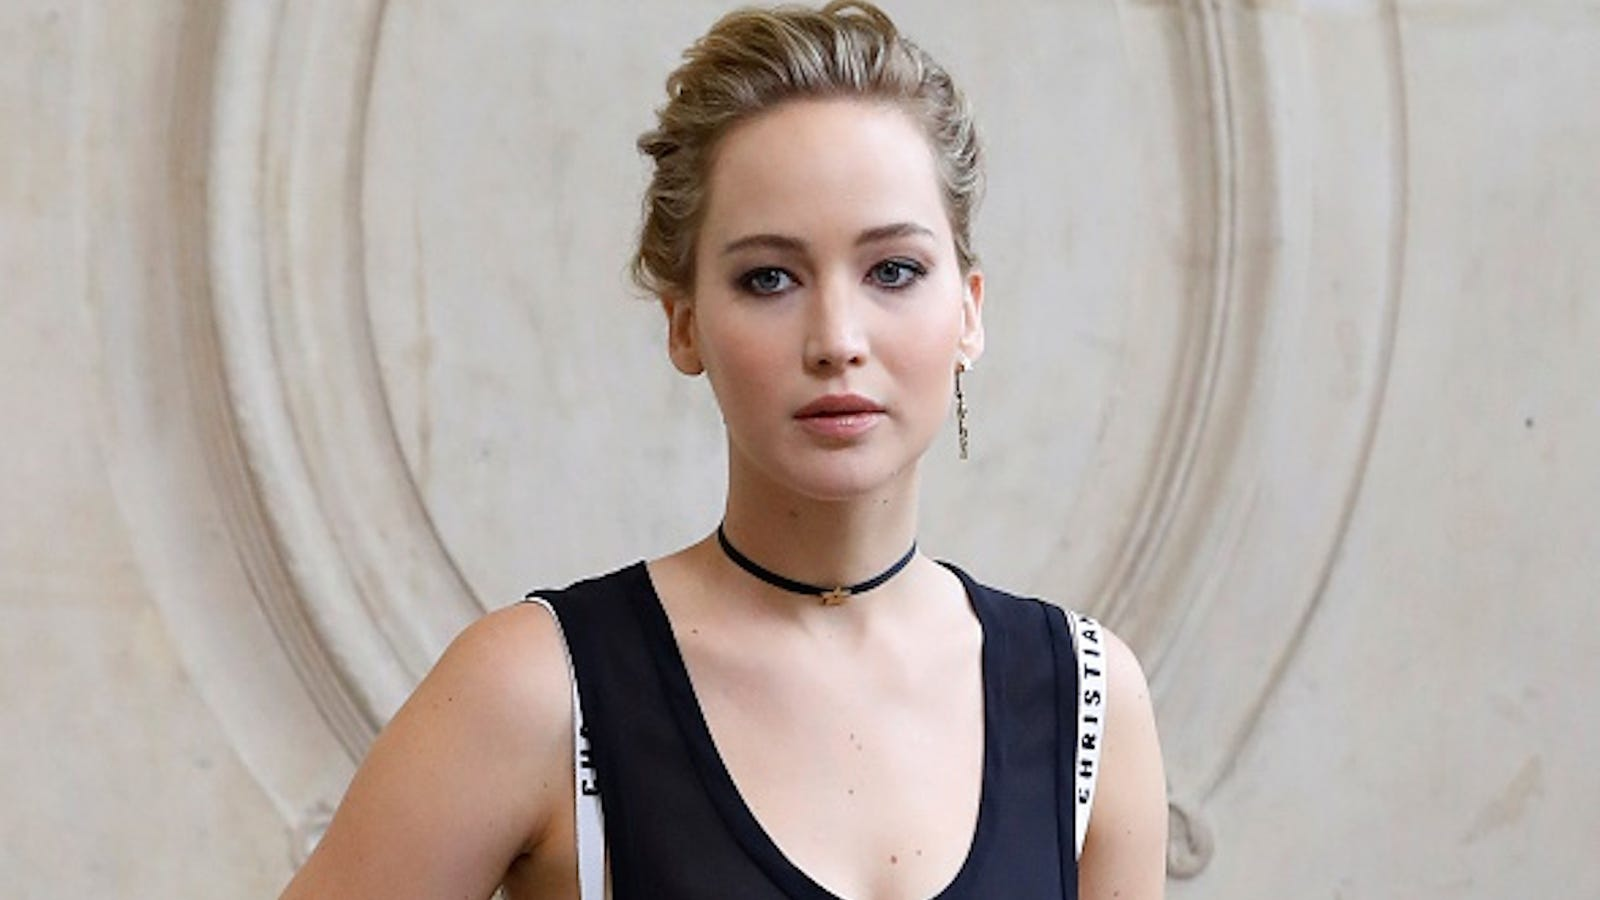 f scott fitzgerald news video and gossip jezebel our chill astronomically famous bff jennifer lawrence has been cast to star in zelda a film about tragic writer and socialite zelda fitzgerald